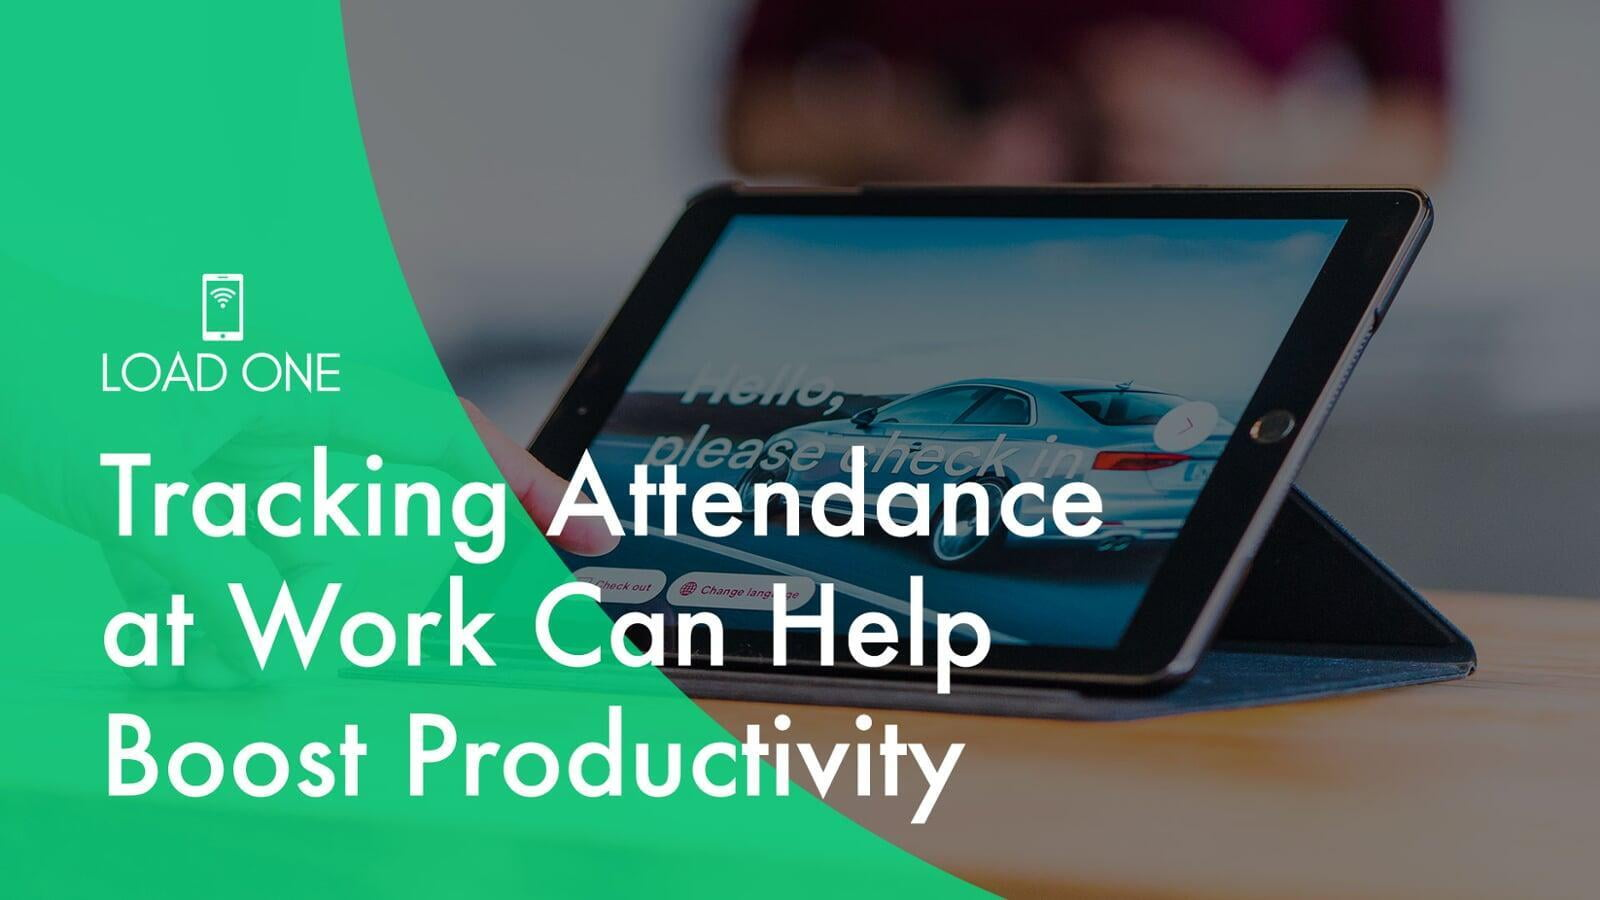 Tracking Attendance at Work Can Help Boost Productivity